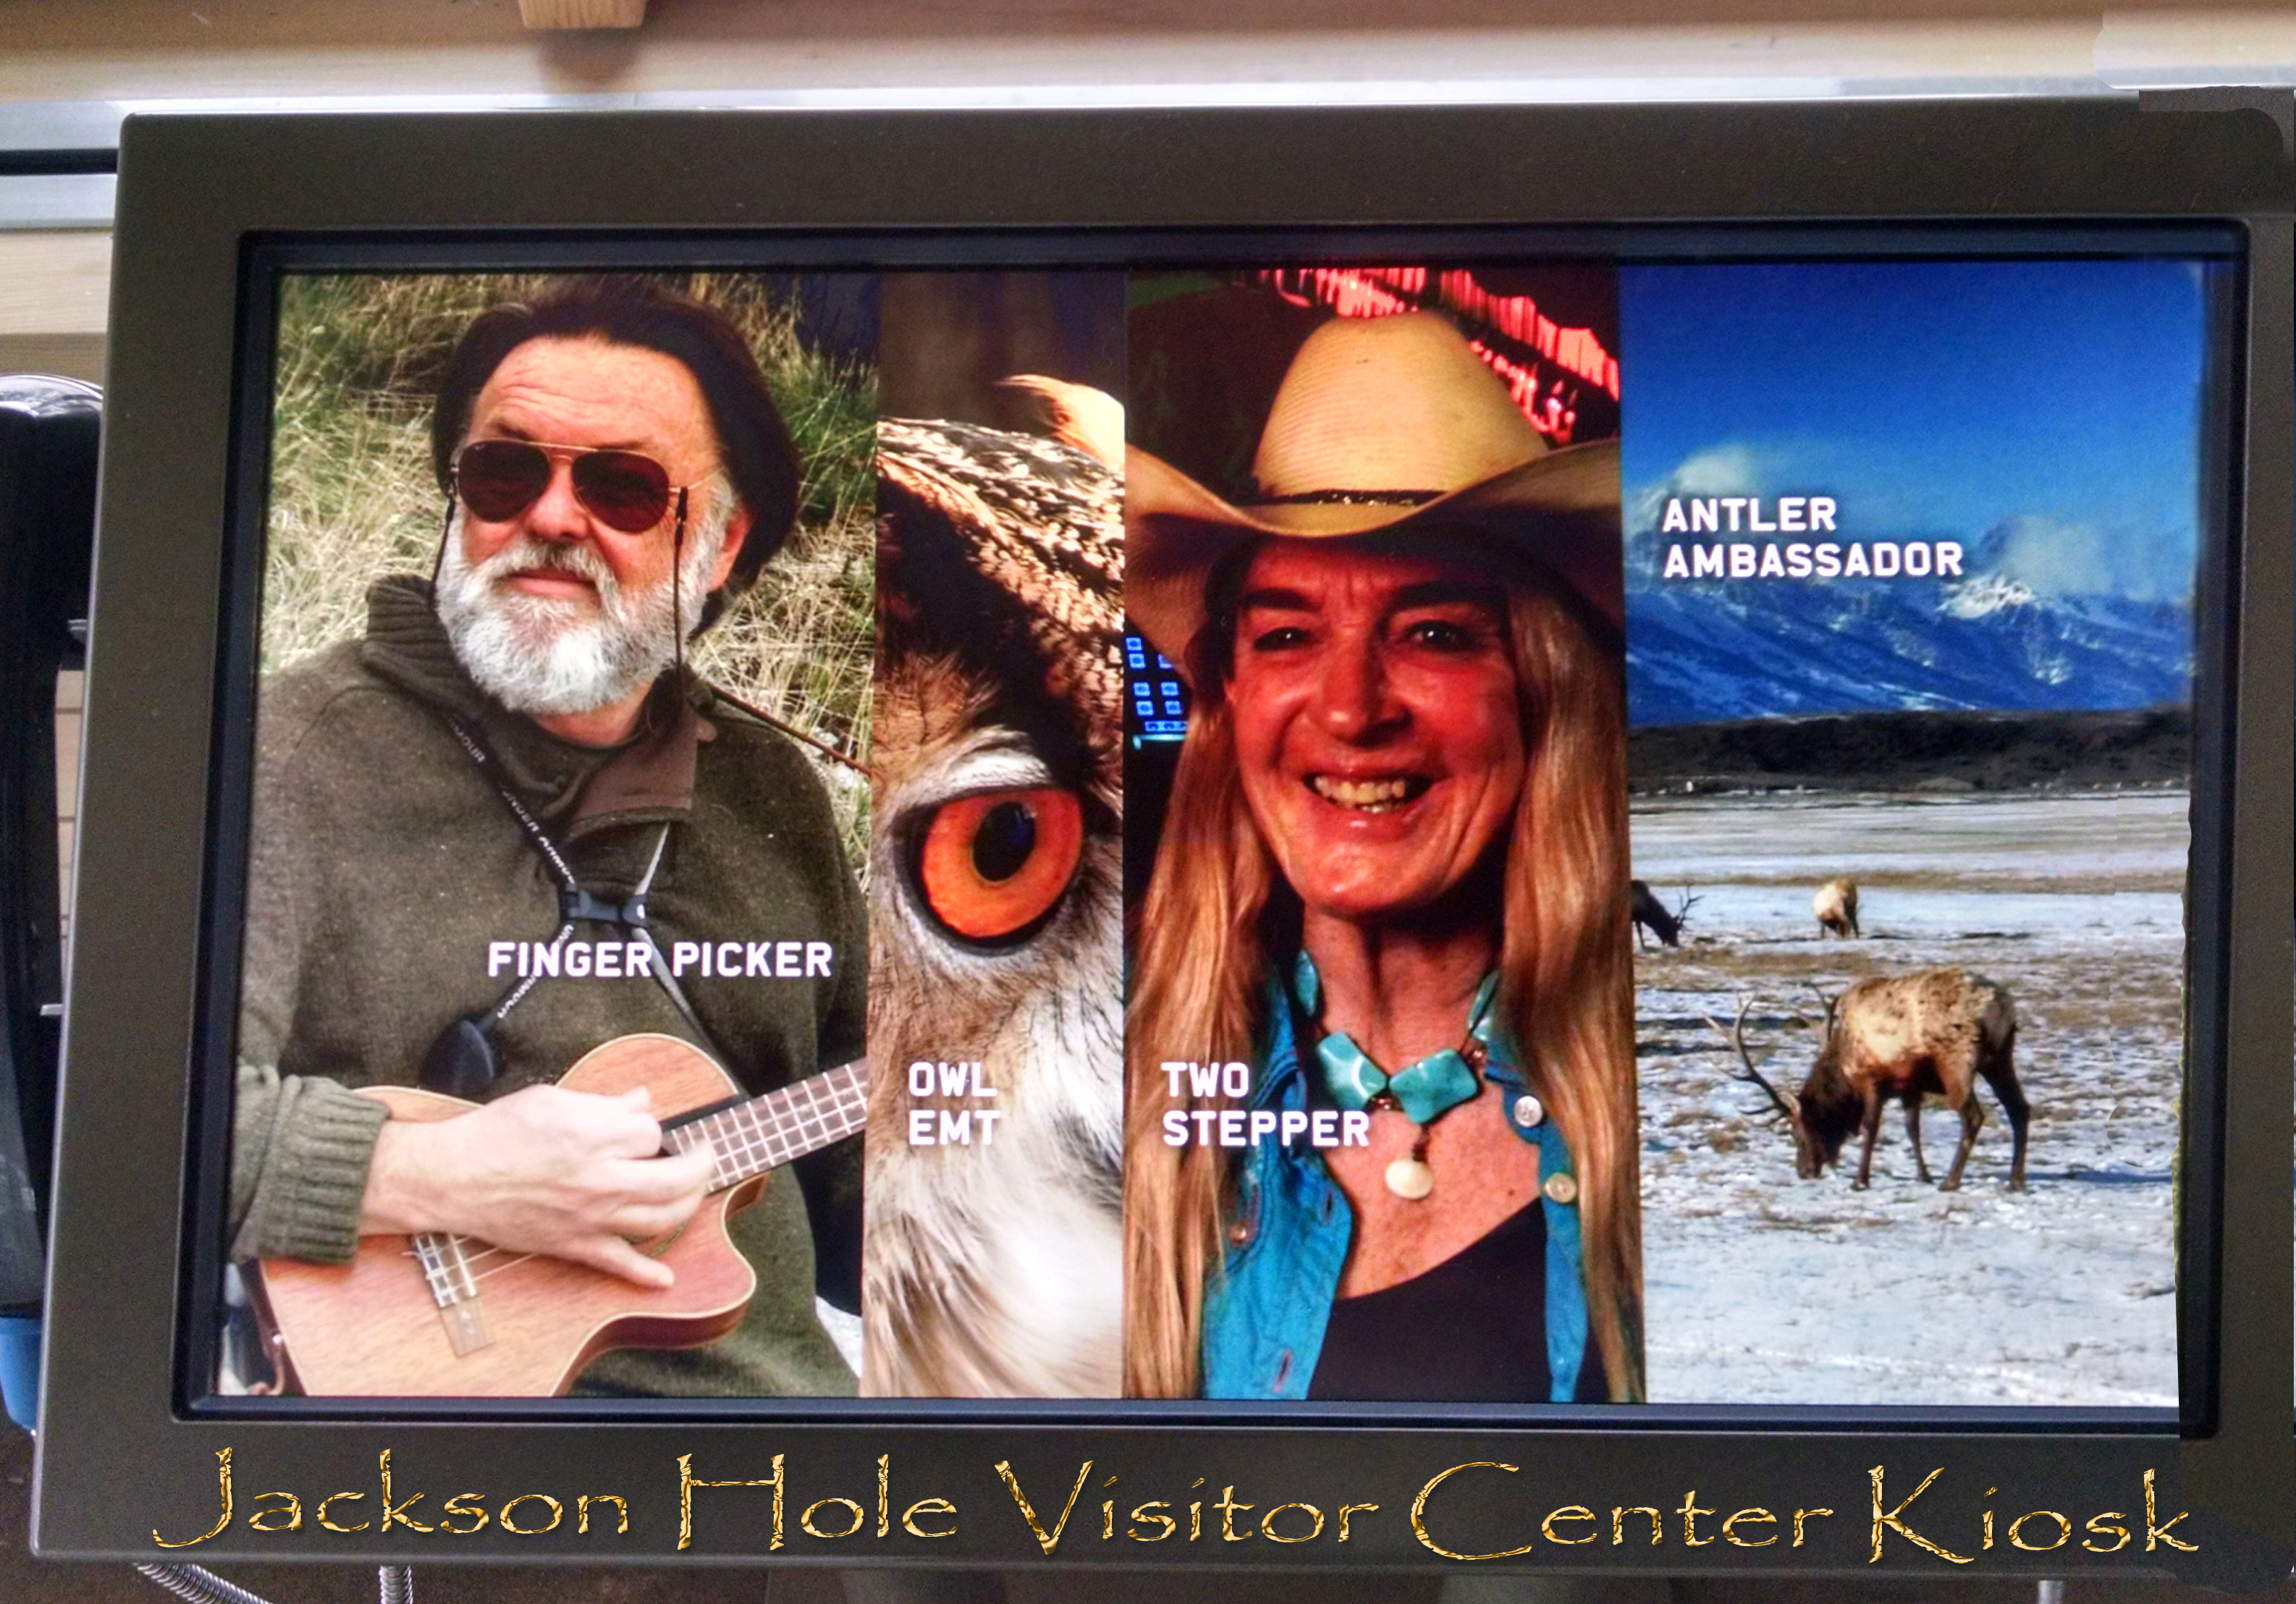 Jackson Hole Visitor Center Kiosk